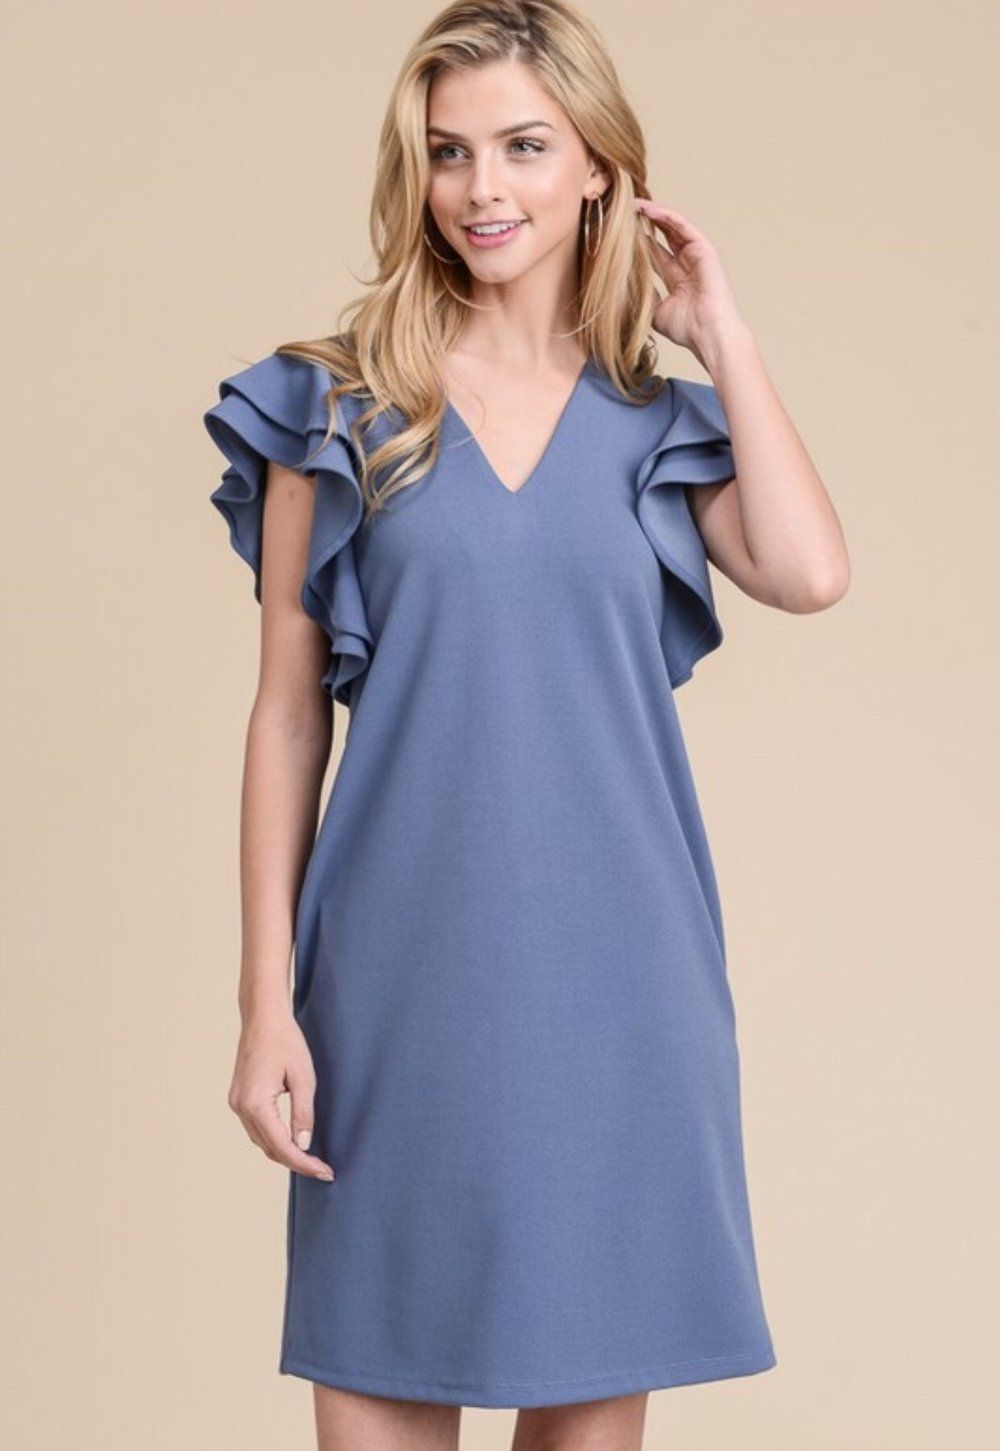 01d5030650944a Olga Steel Gray Dress Amuzen Dress with Tiered Ruffle Sleeves and Seam  Pockets